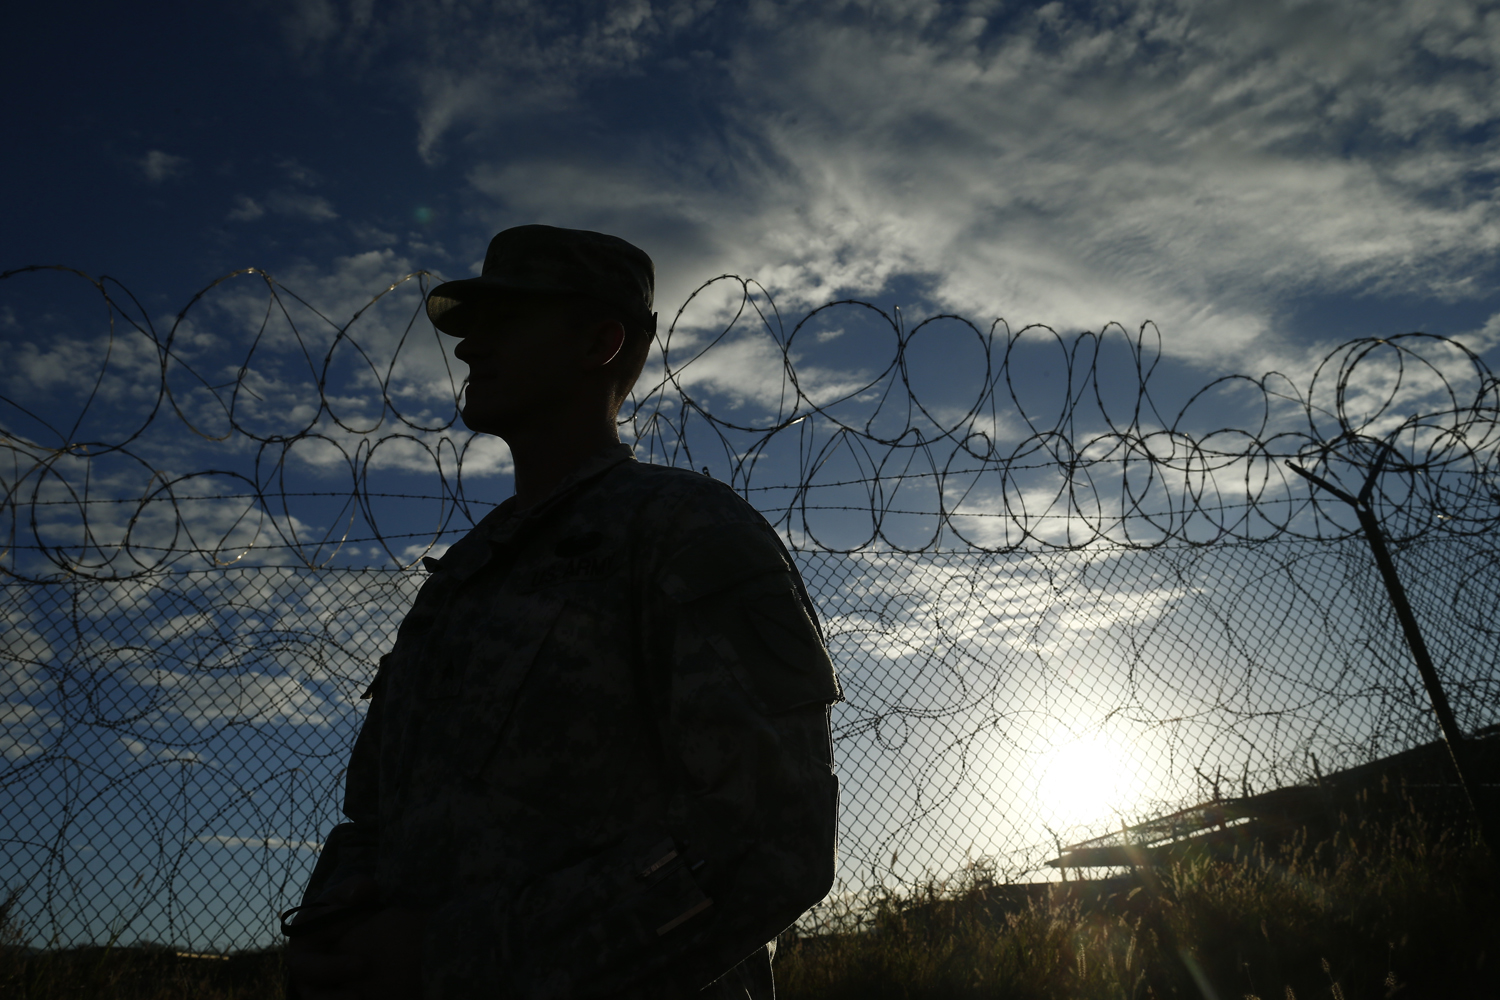 A soldier stands at the now closed Camp X-Ray, which was used as the first detention facility for al-Qaeda and Taliban militants who were captured after the Sept. 11, 2001, attacks, at Guantánamo Bay Naval Base, Cuba, on Nov. 21, 2013